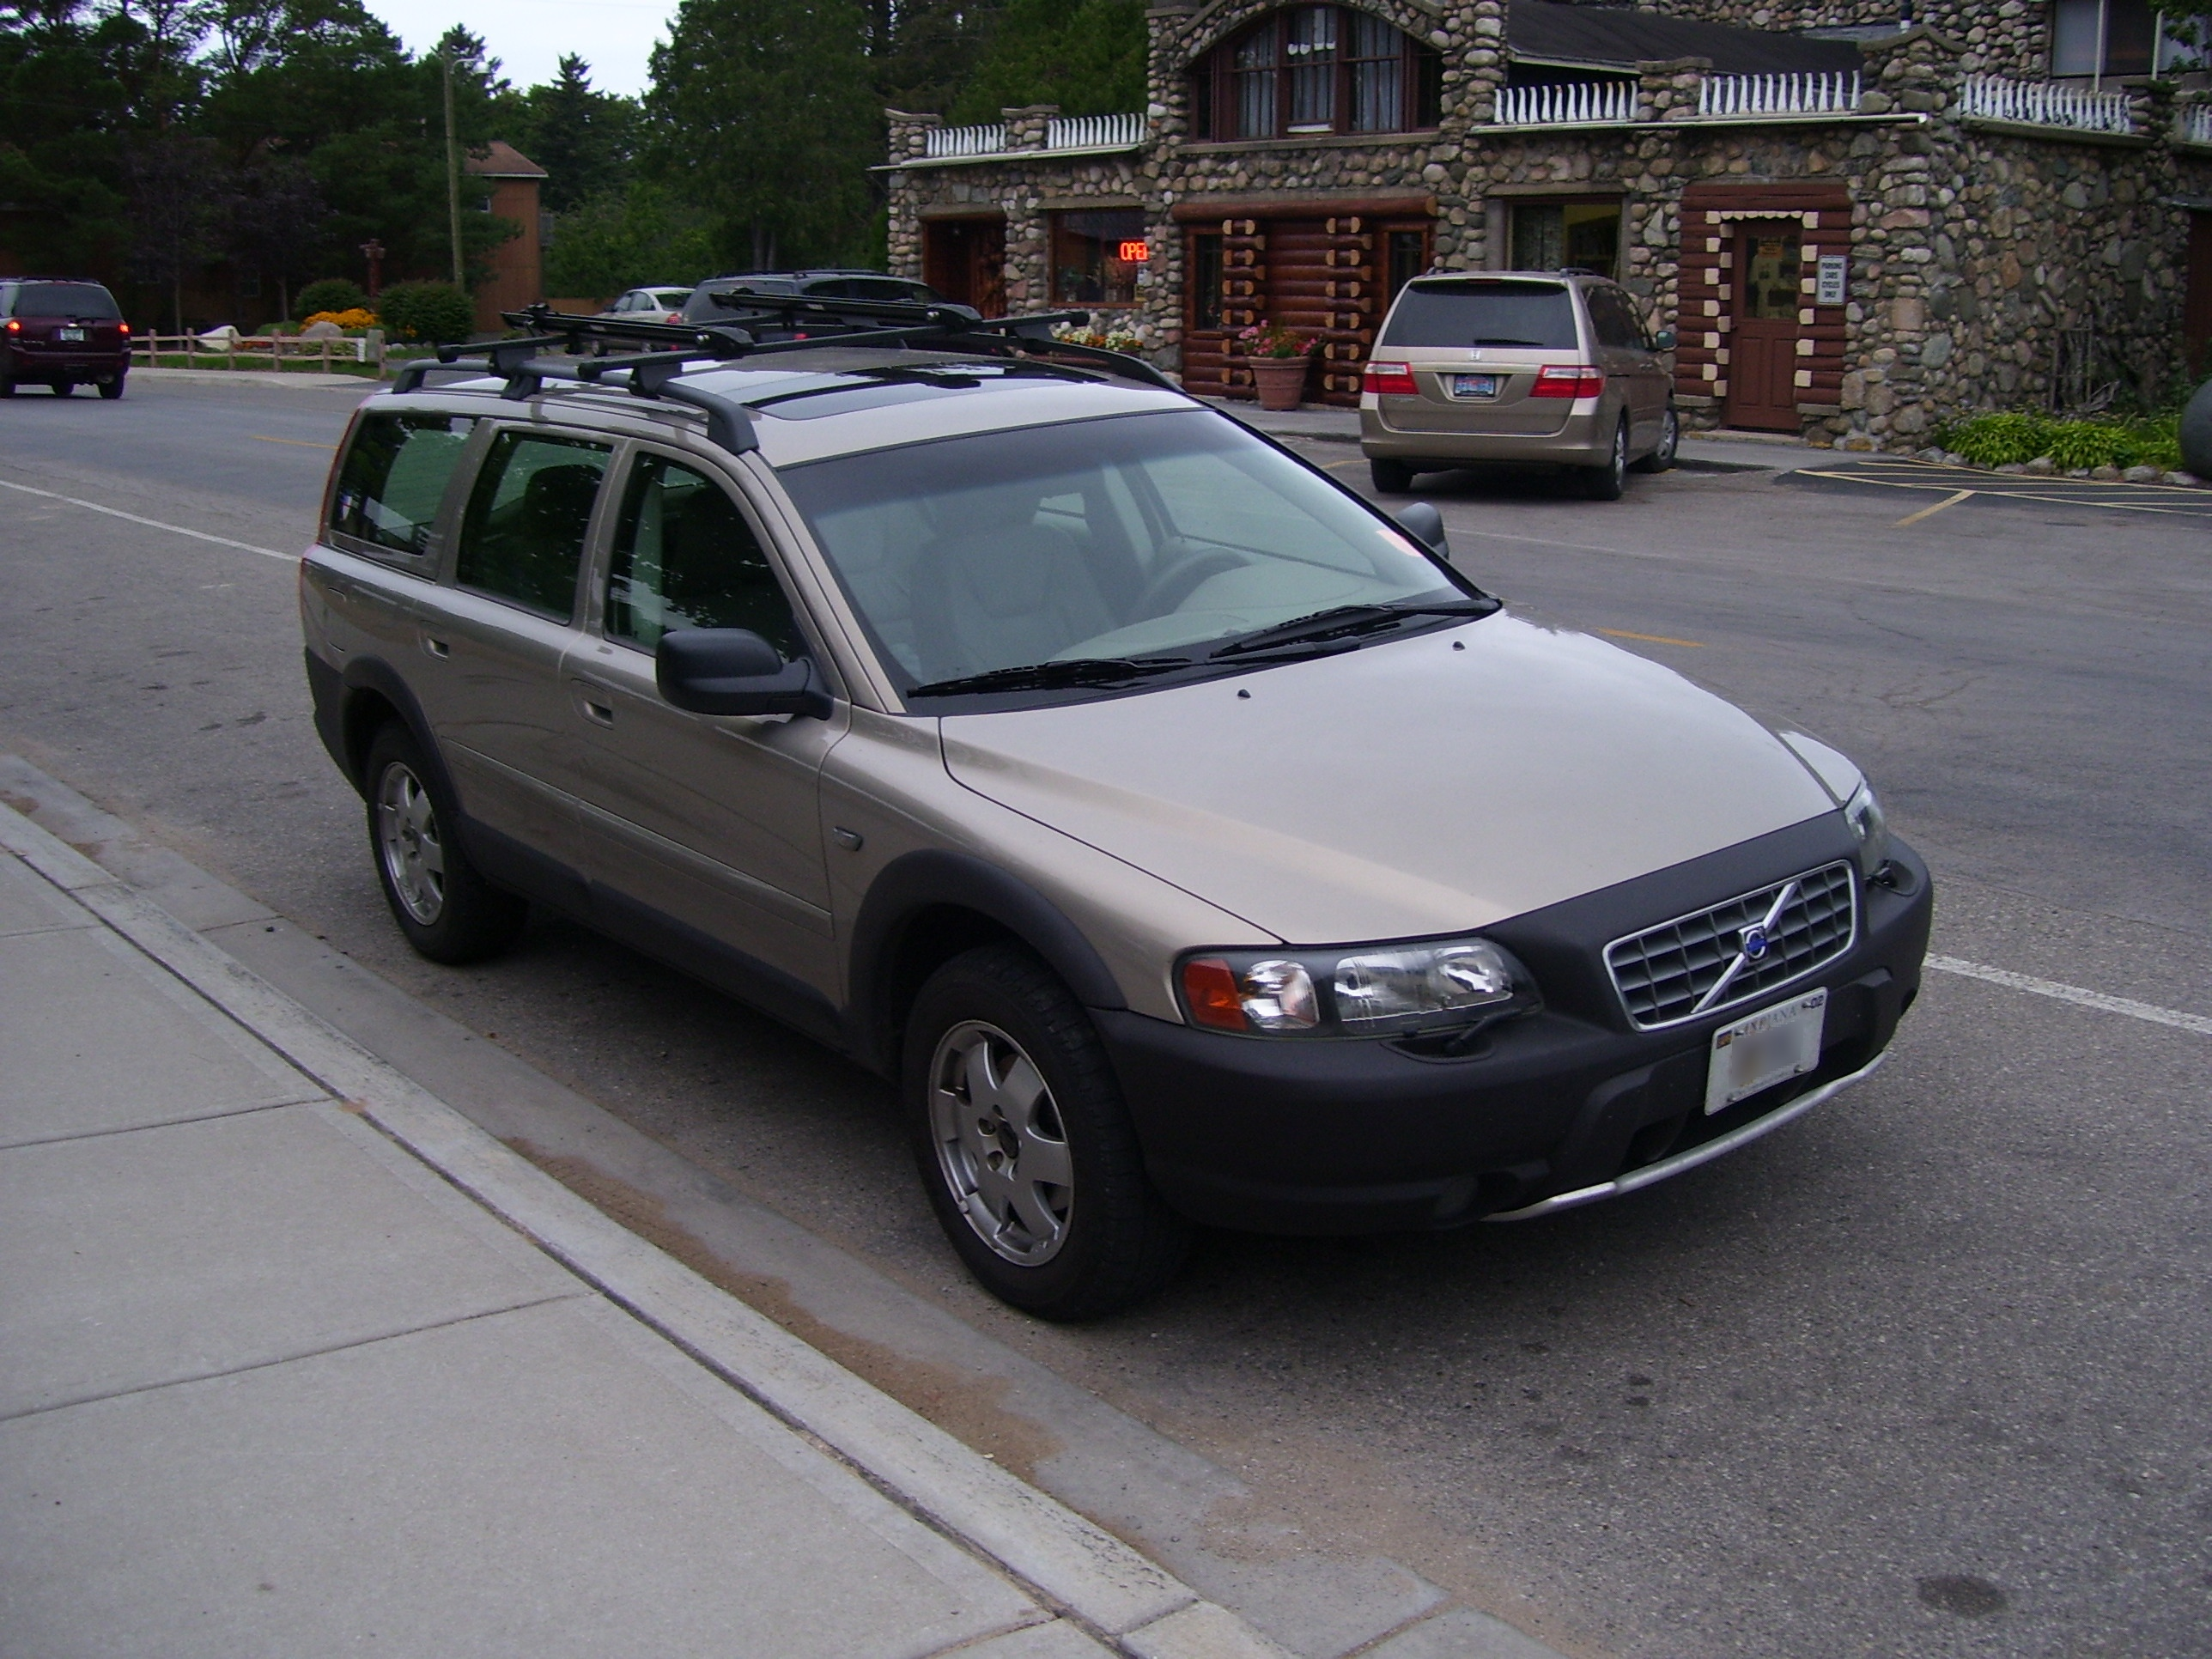 2002 volvo v70 information and photos zombiedrive. Black Bedroom Furniture Sets. Home Design Ideas